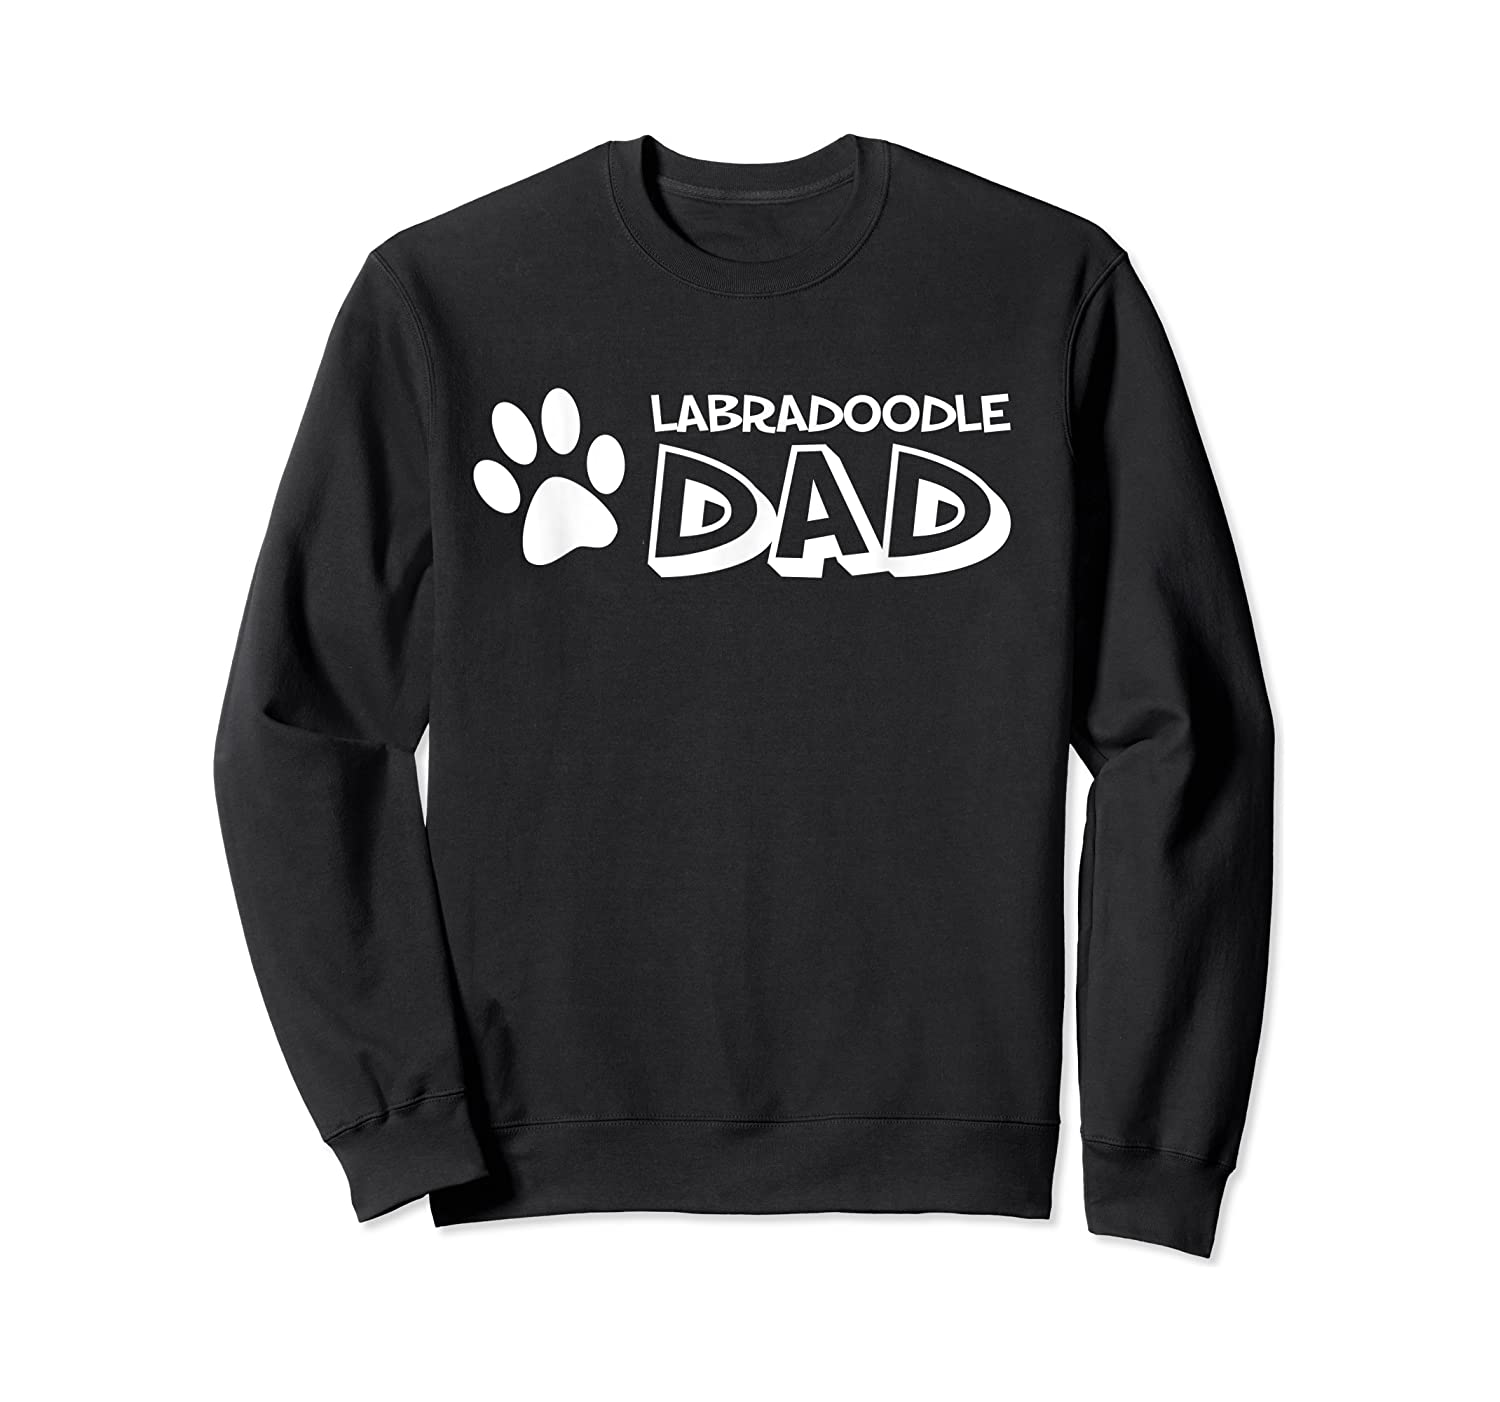 S Labradoodle Dad T-shirt For  Crewneck Sweater